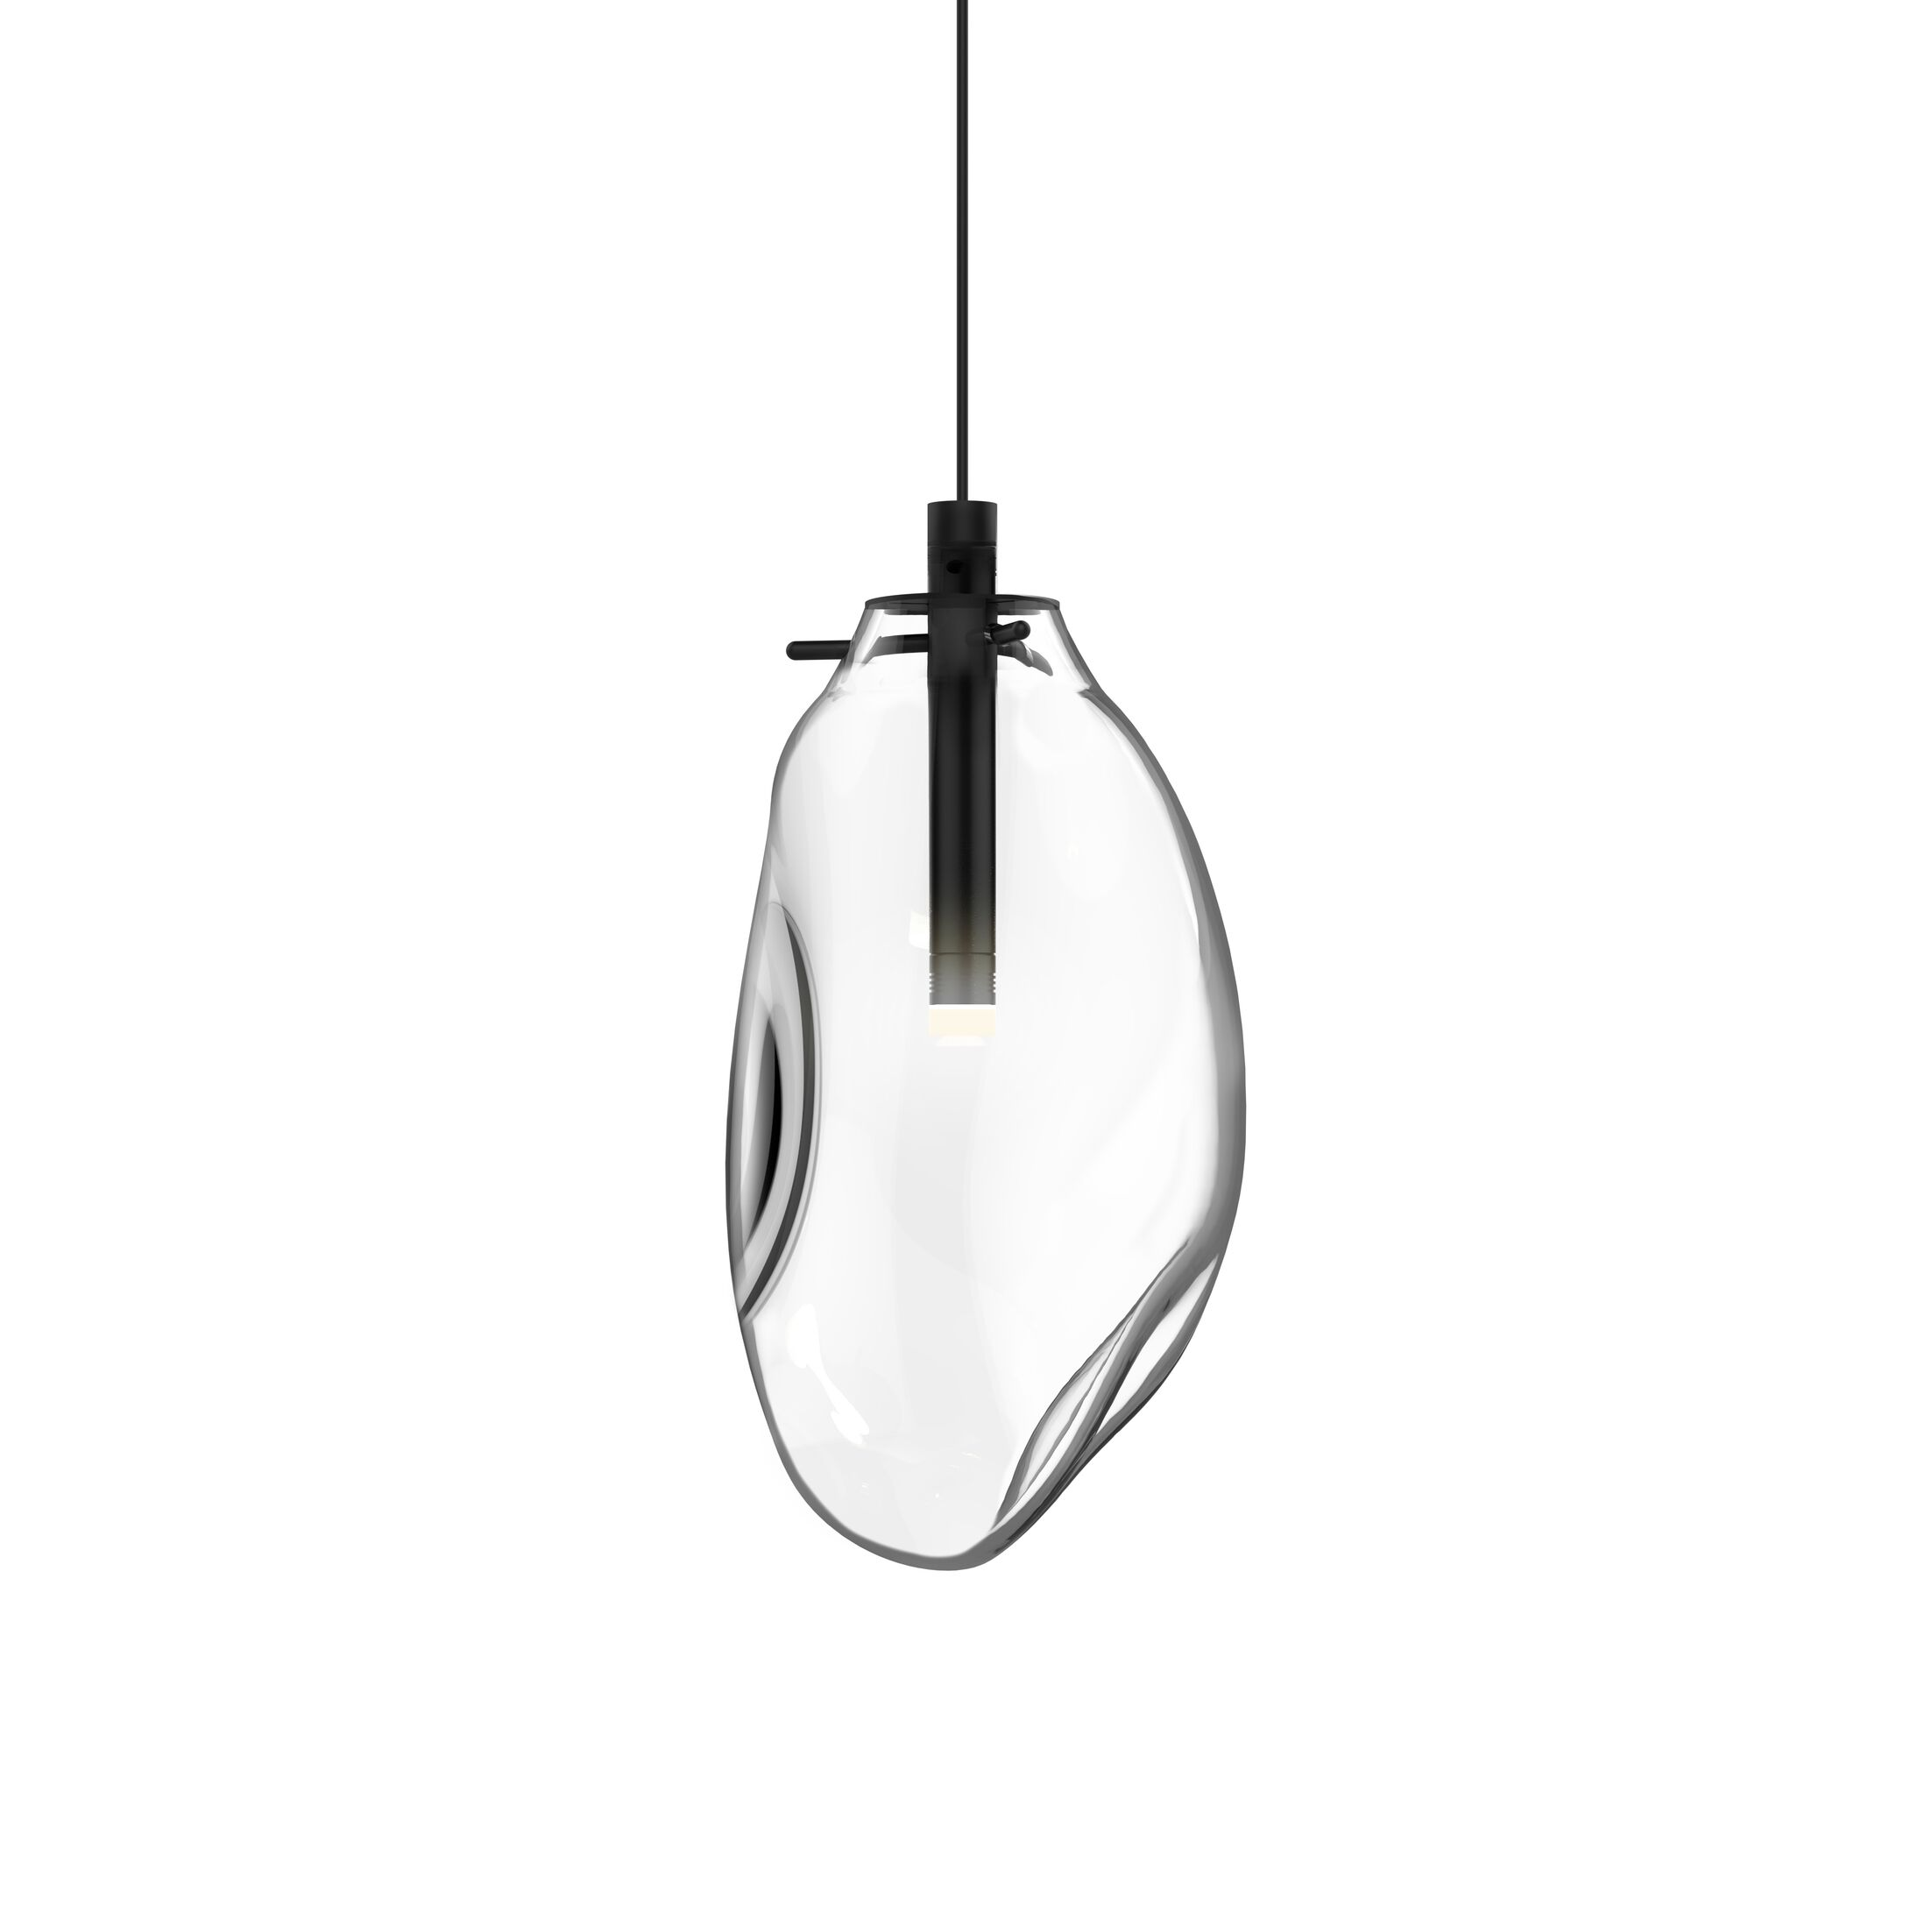 Tierra 1-Light Novelty Pendant Shade Finish: Clear, Size: 10.75